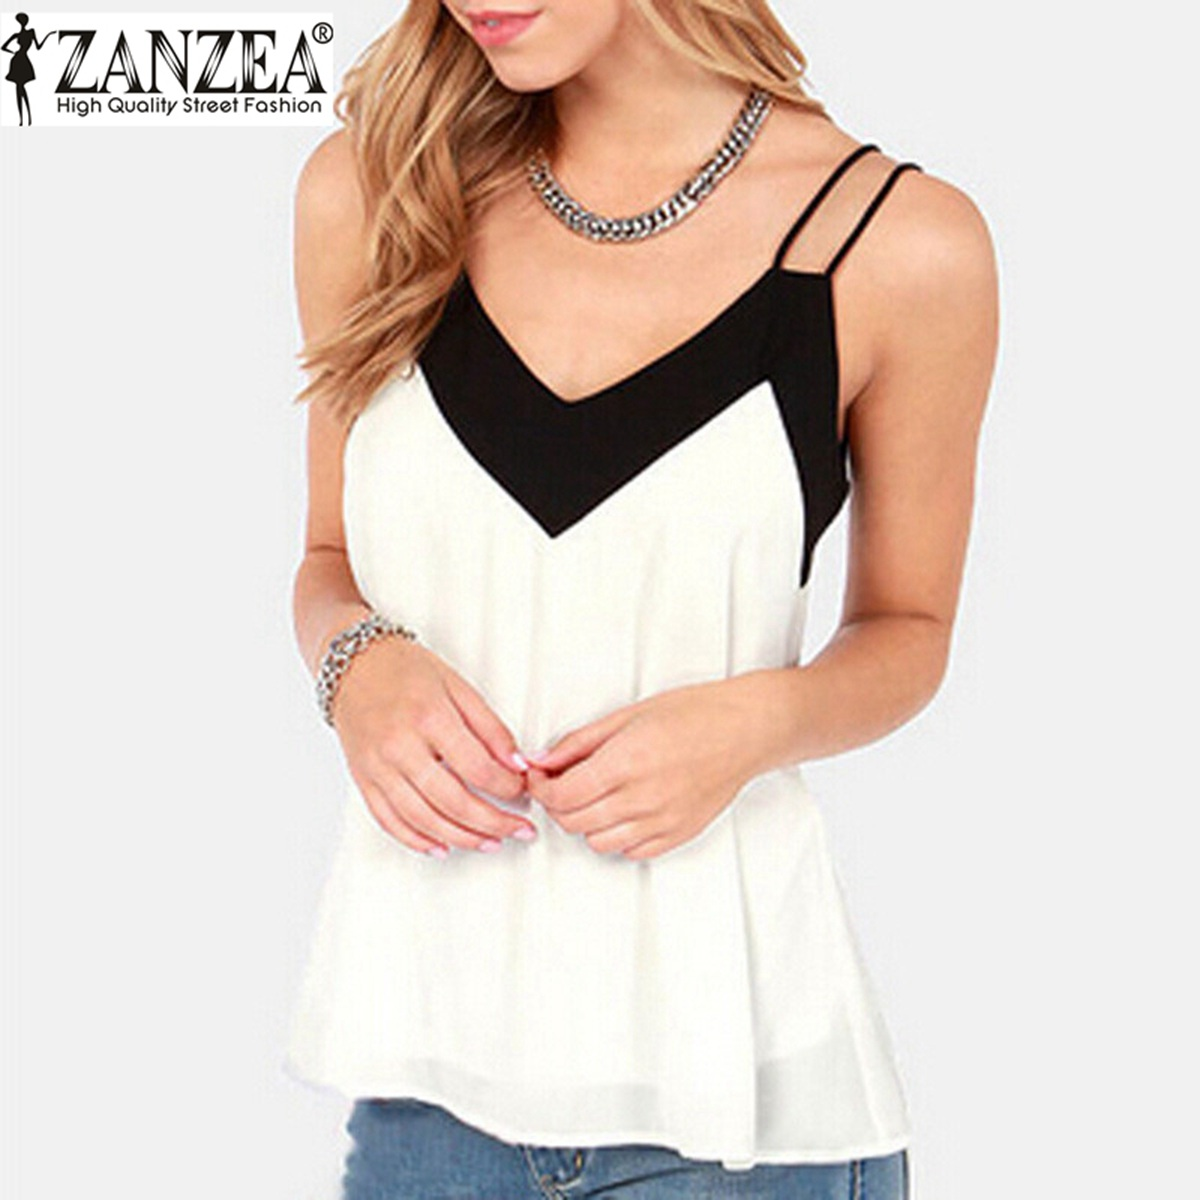 Ambitious 2021 Summer Style Tank Top Vest Women V-neck Sleeveless Halter Blouse Shirt Sexy Casual Loose Tops Chiffon Blusas Plus Size Good Heat Preservation